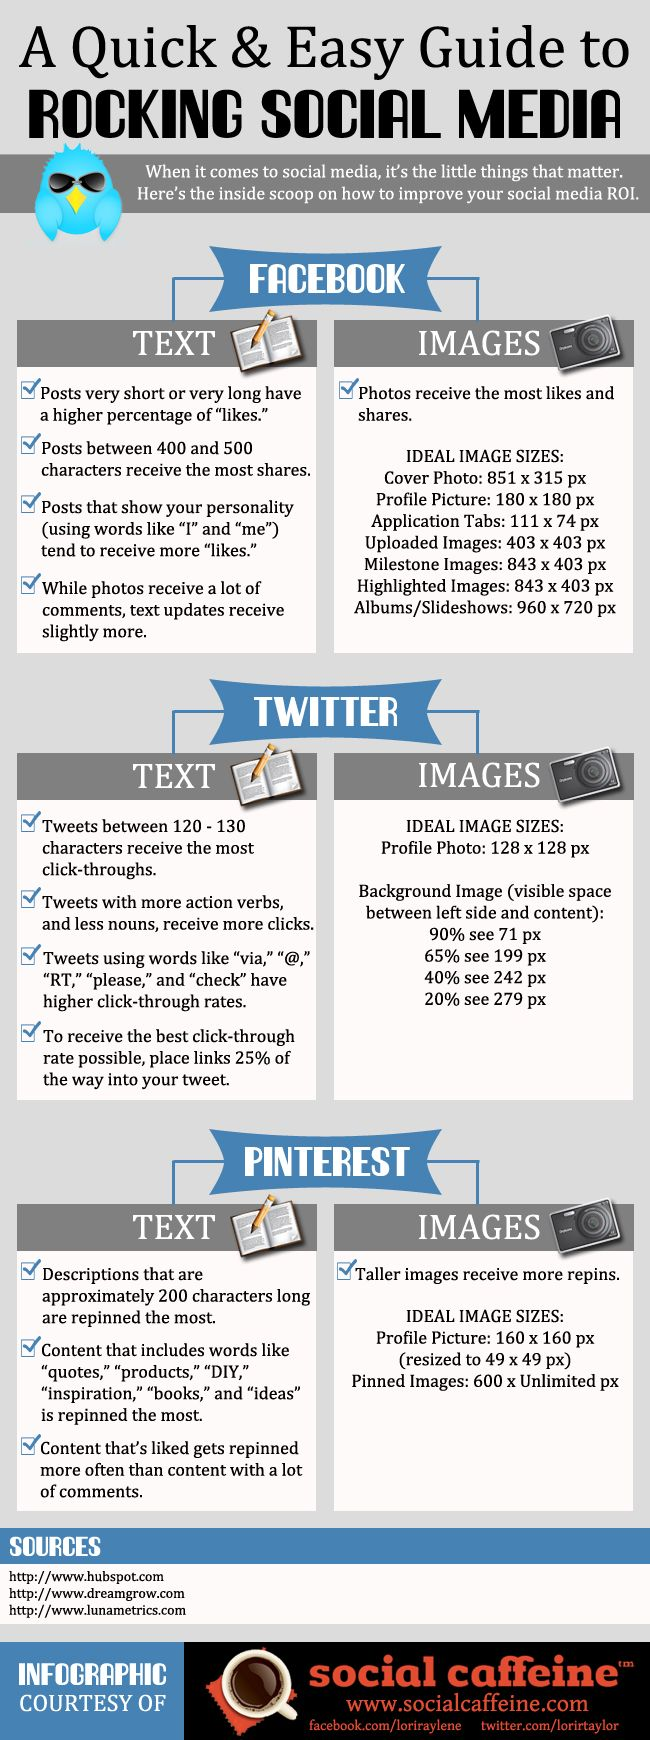 Rocking Social Media #Infographic #SMM #SocialMedia #Marketing